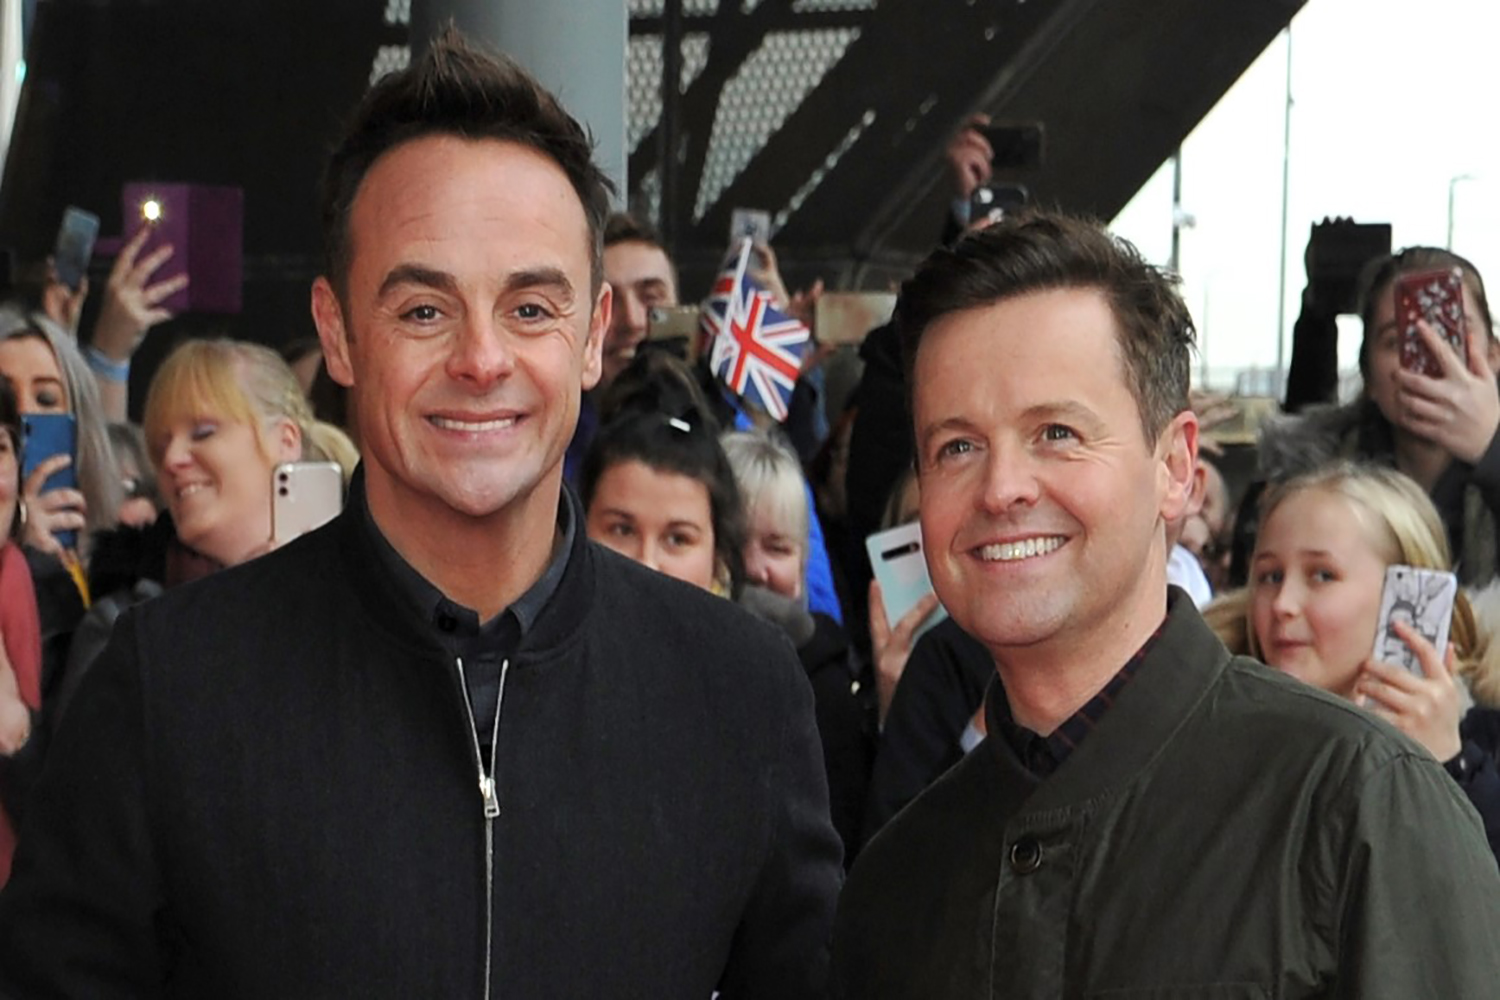 Saturday Night Takeaway viewers make plea to Ant and Dec after final show